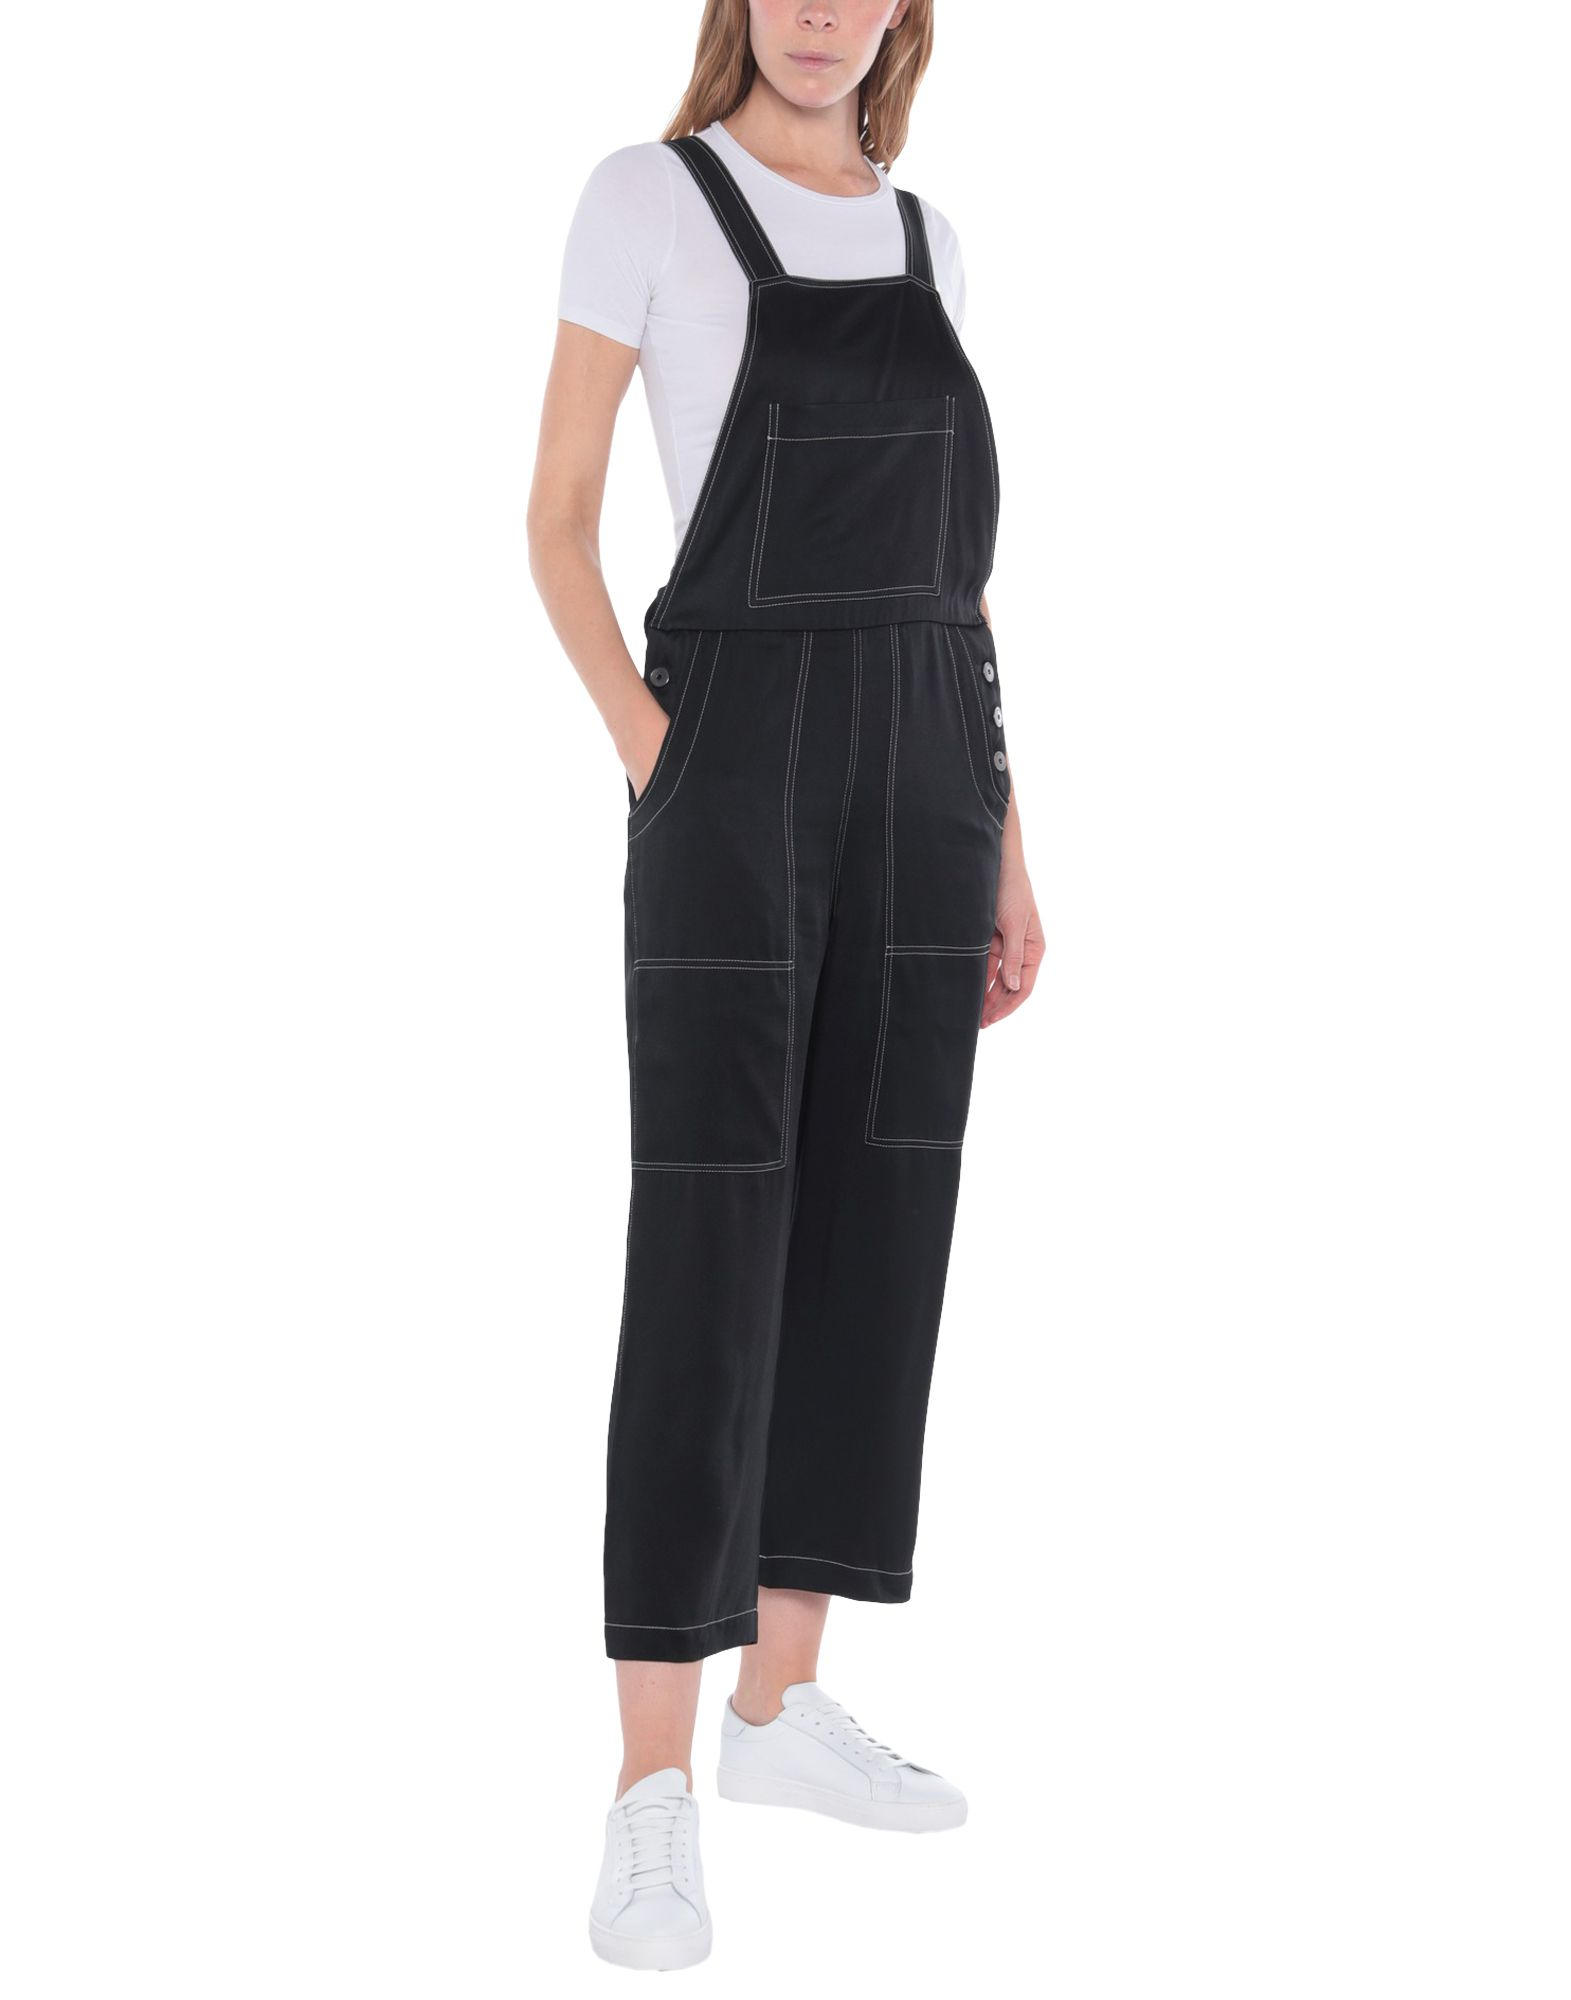 BRUNELLO CUCINELLI Overalls. satin, no appliqués, basic solid color, sleeveless, overalls top, multipockets, single chest pocket, button closing. 54% Viscose, 46% Acetate